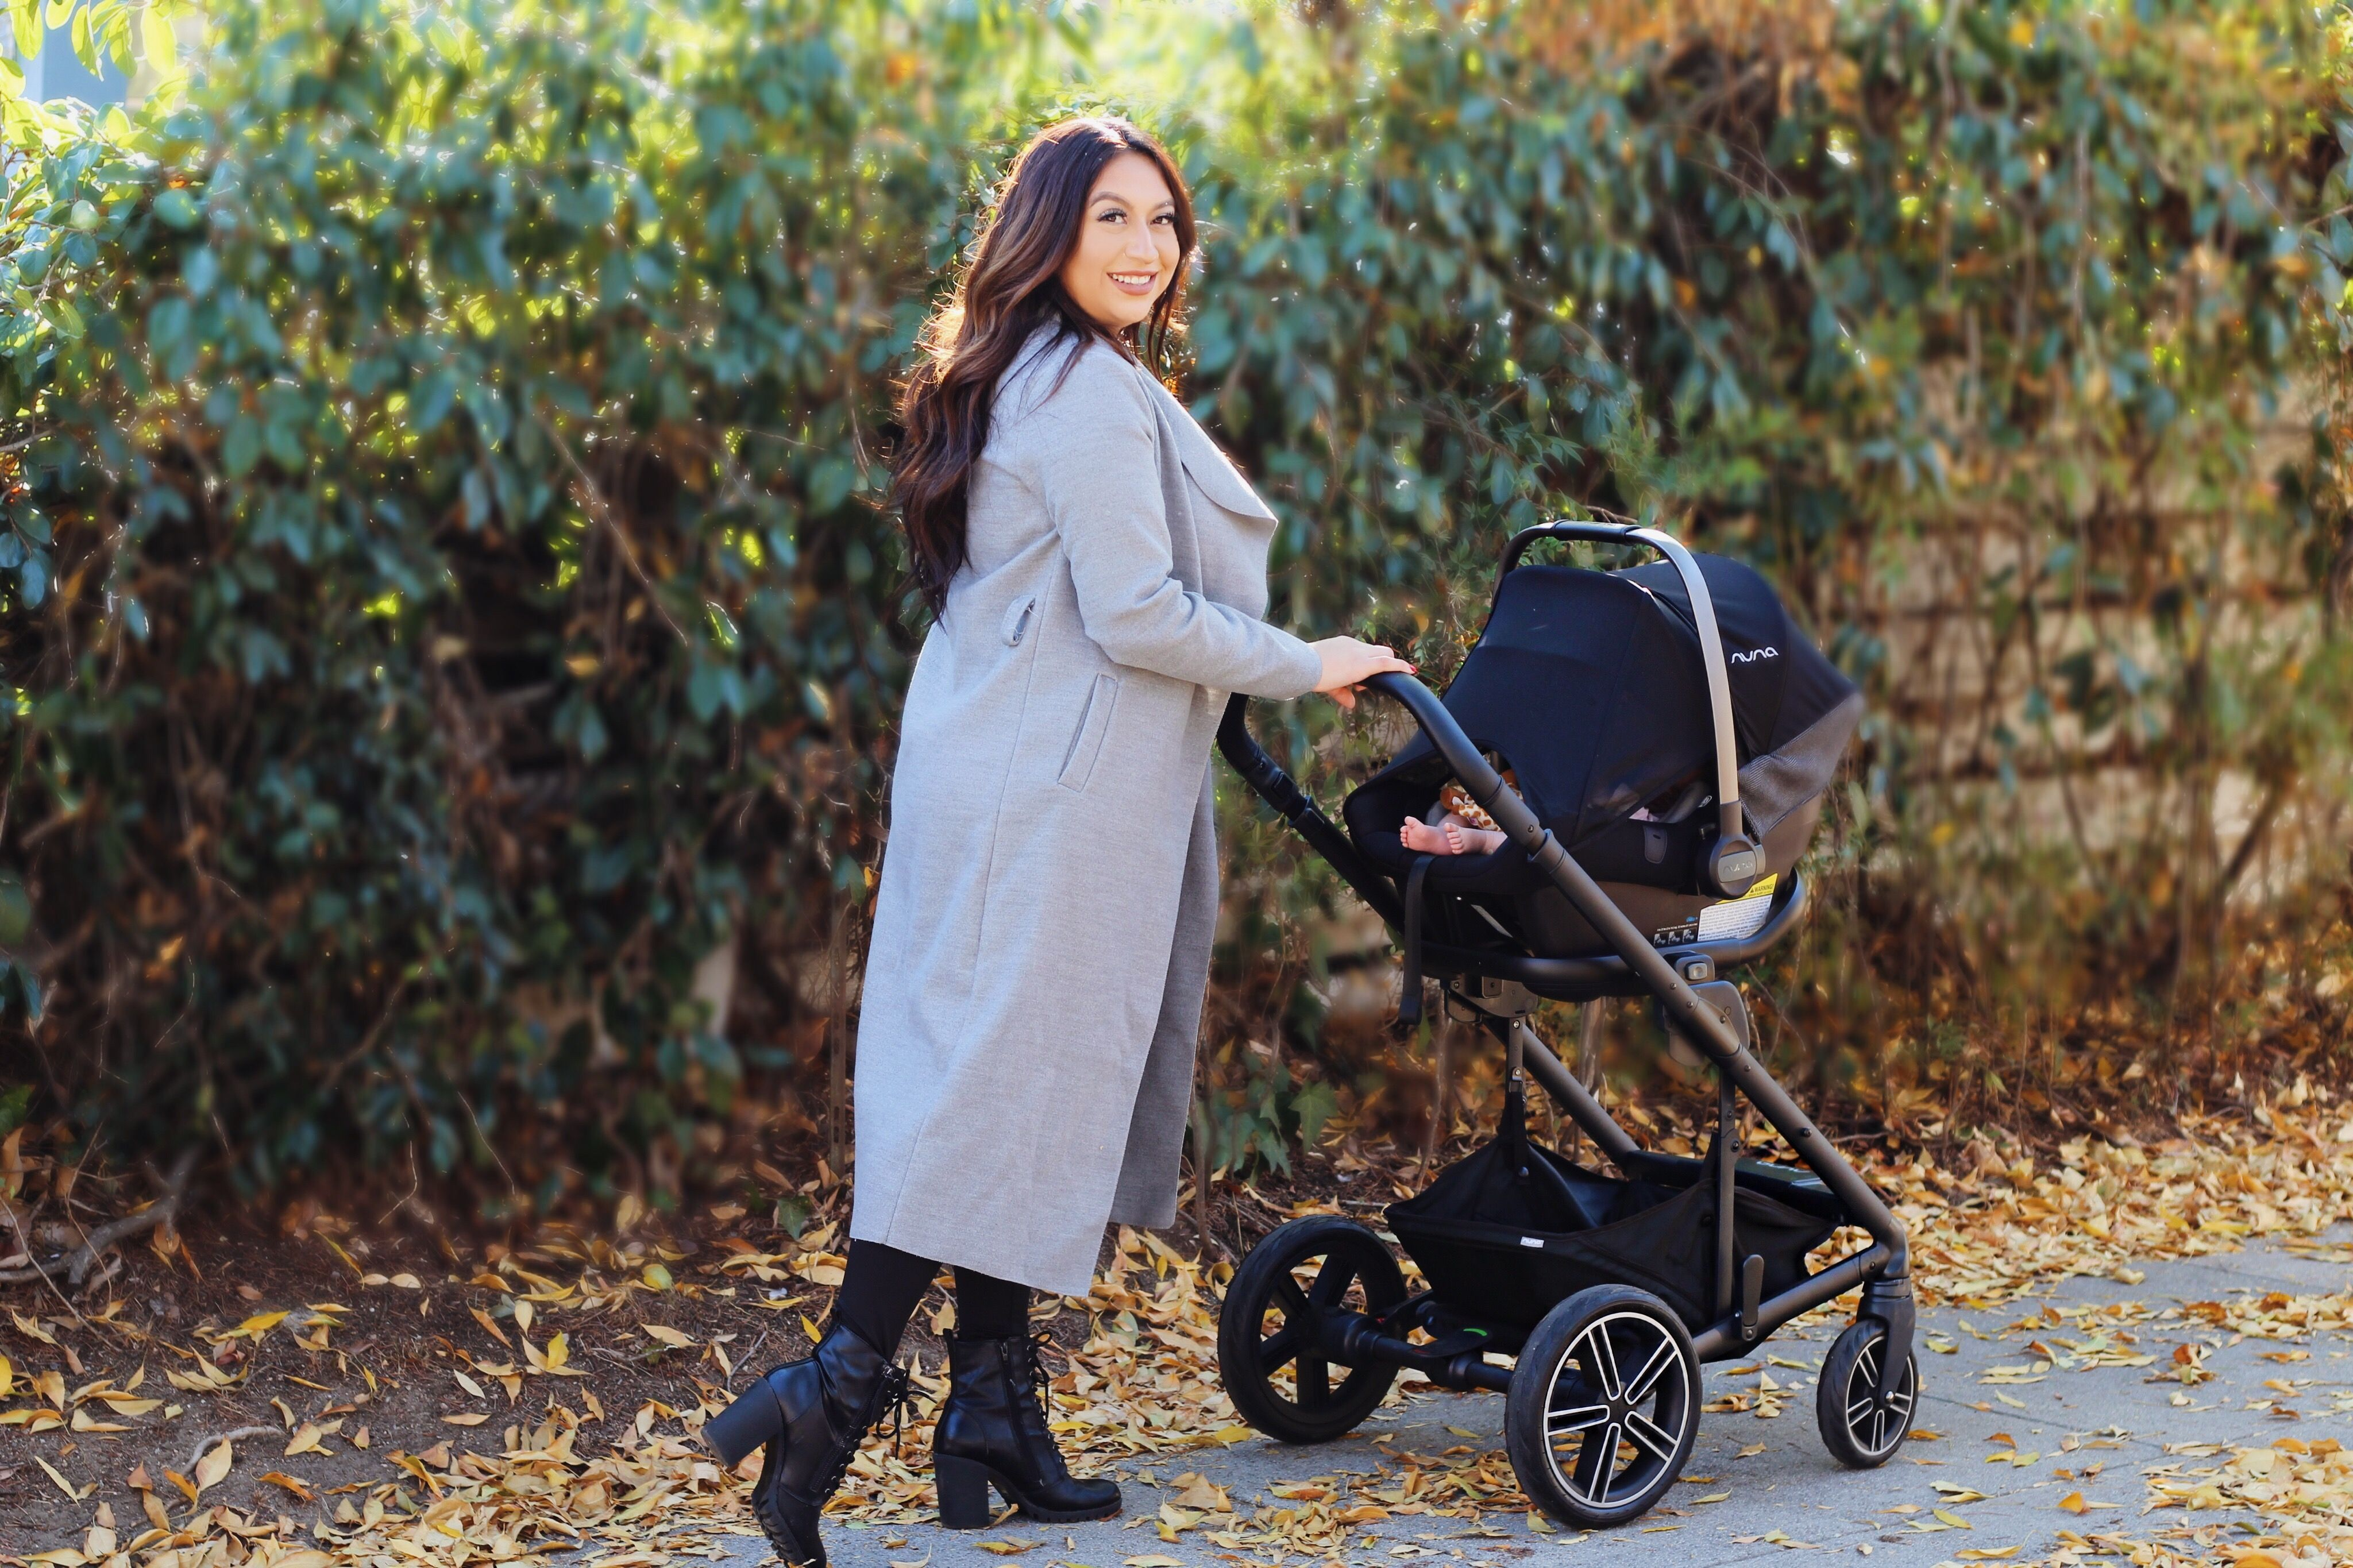 The Nuna stroller is a must have for newborns! 2019 Nuna